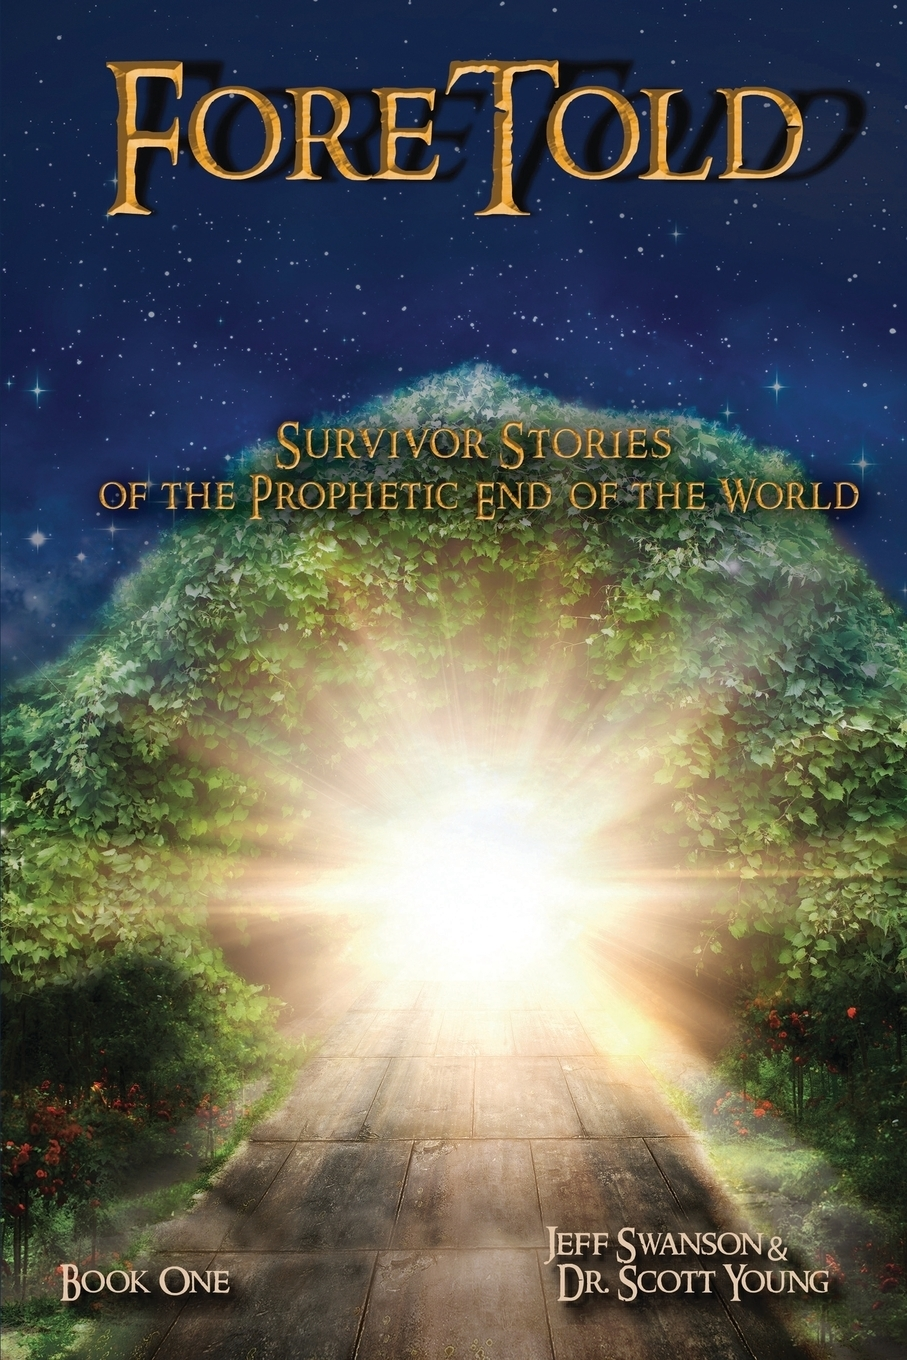 ForeTold. Survivor Stories of the Prophetic End of the World